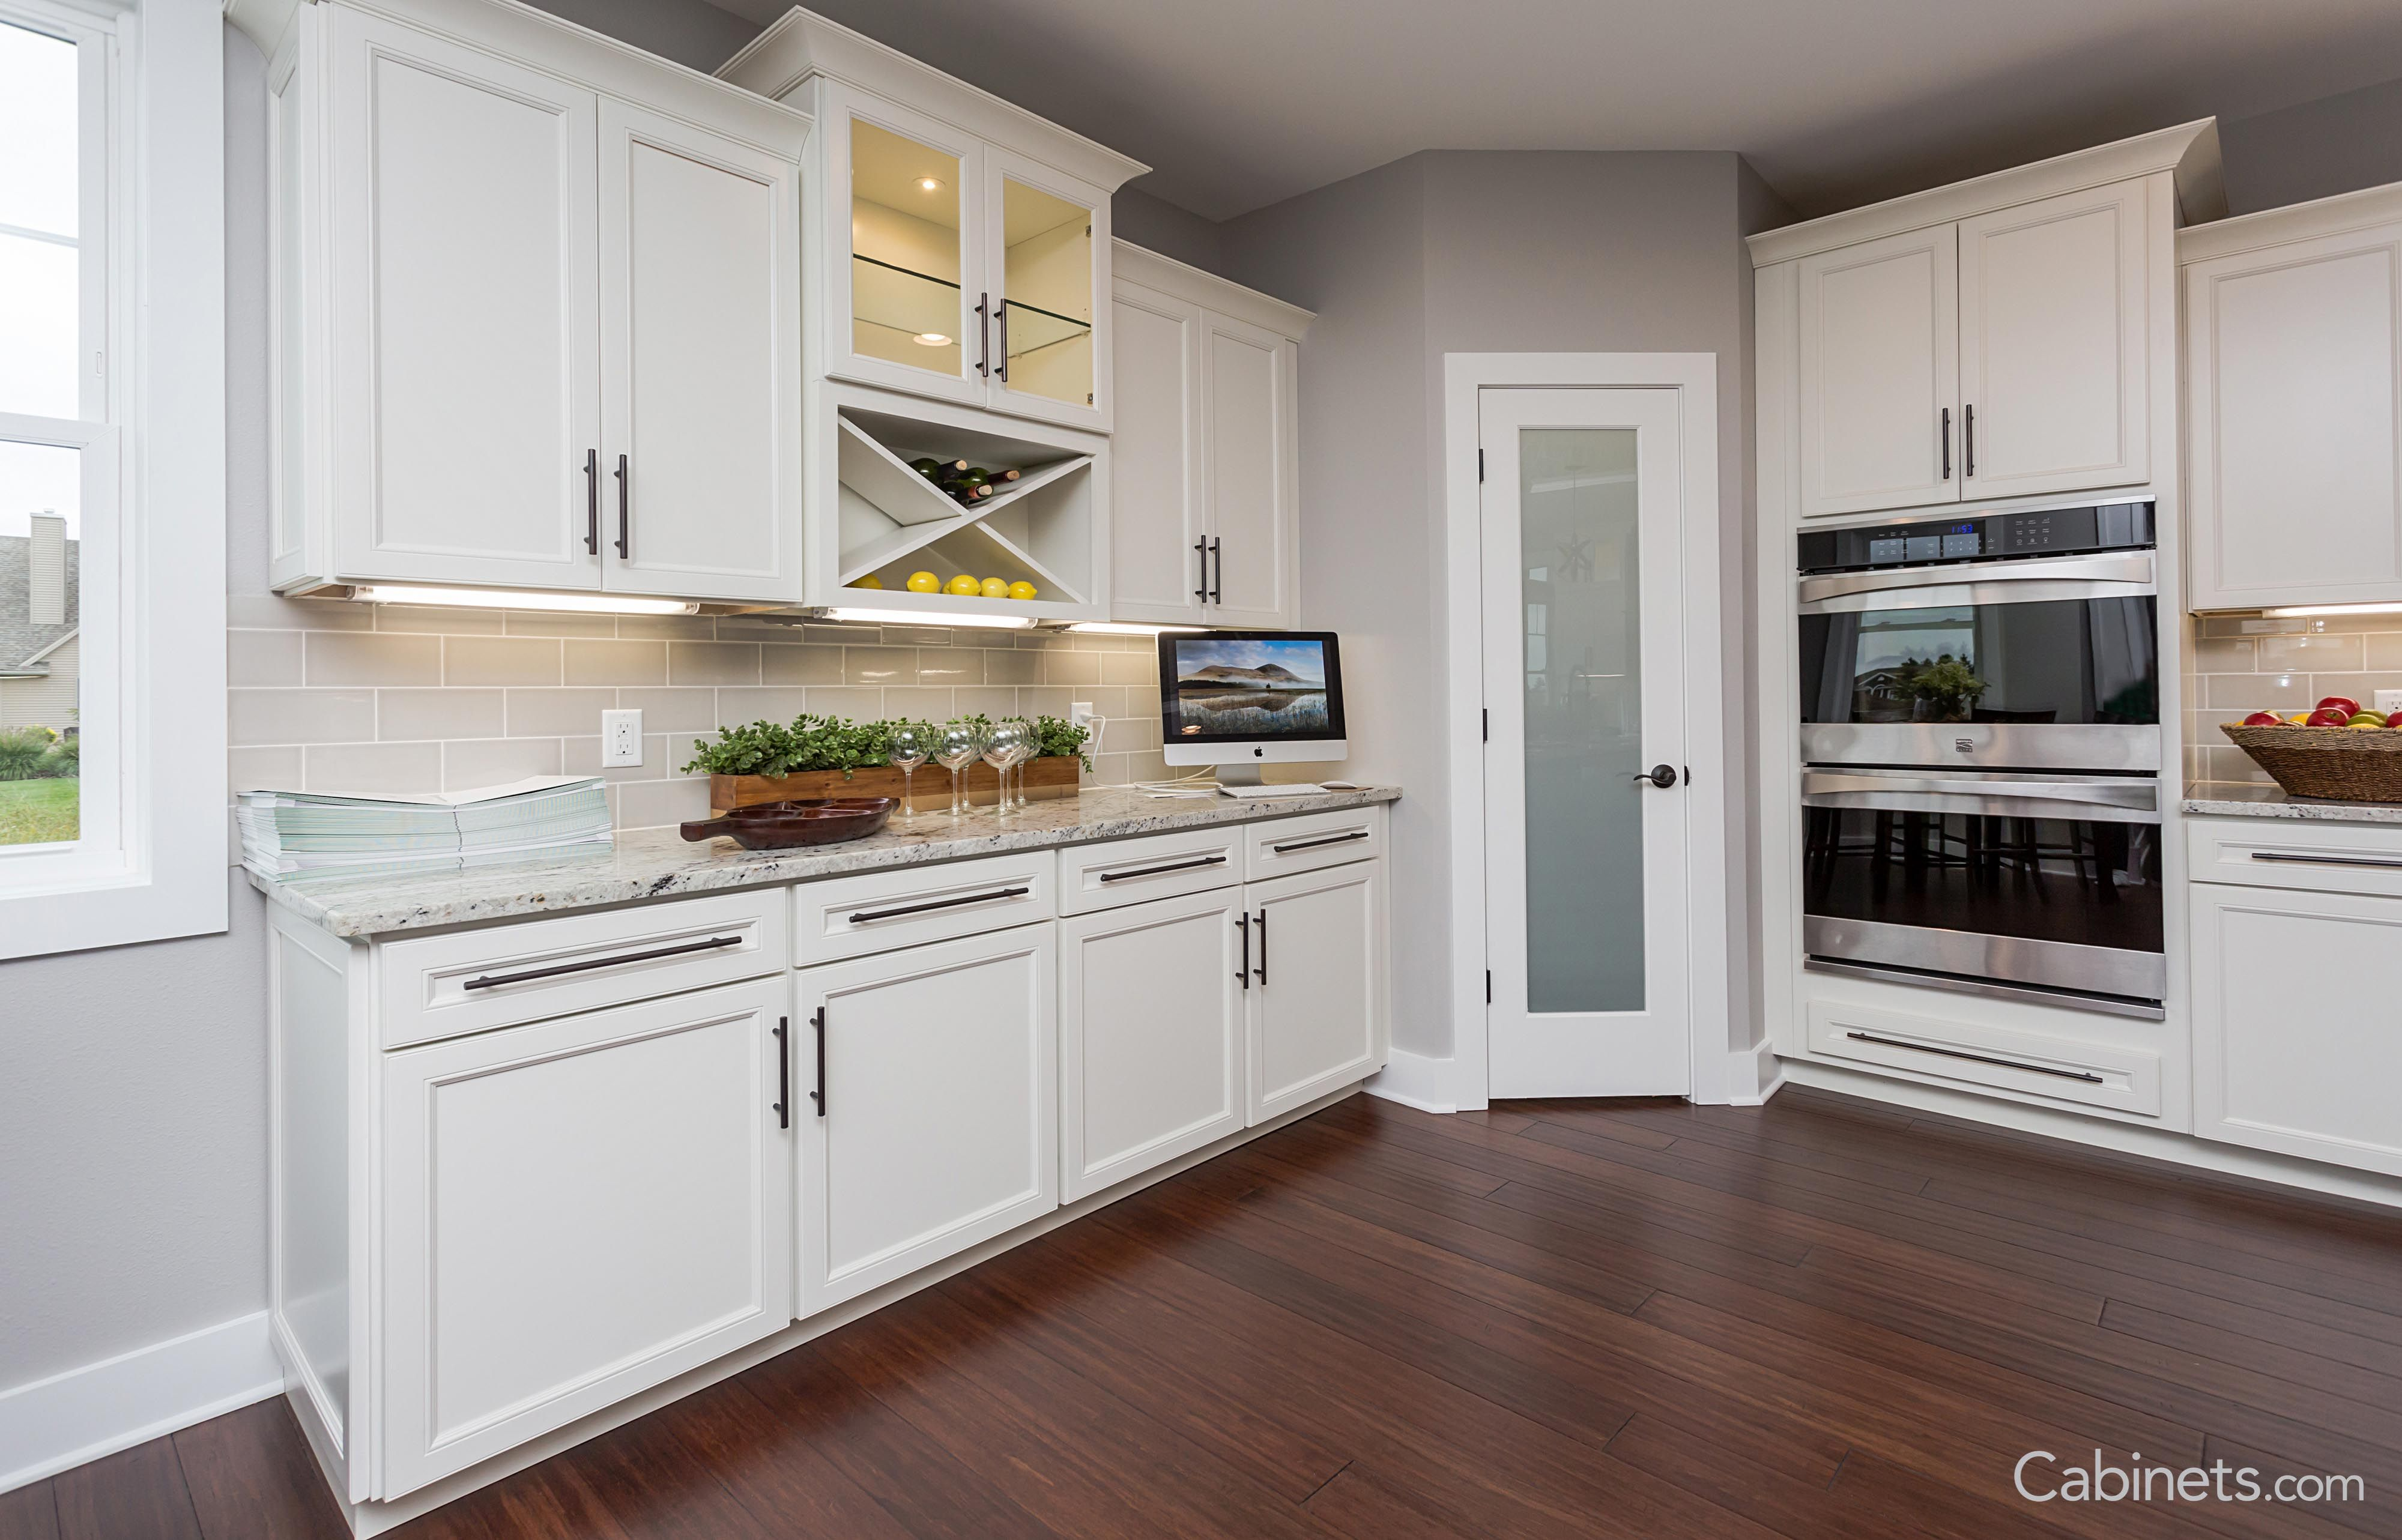 Online Kitchen Cabinet Companies Great home bar area that could also be used as home office space